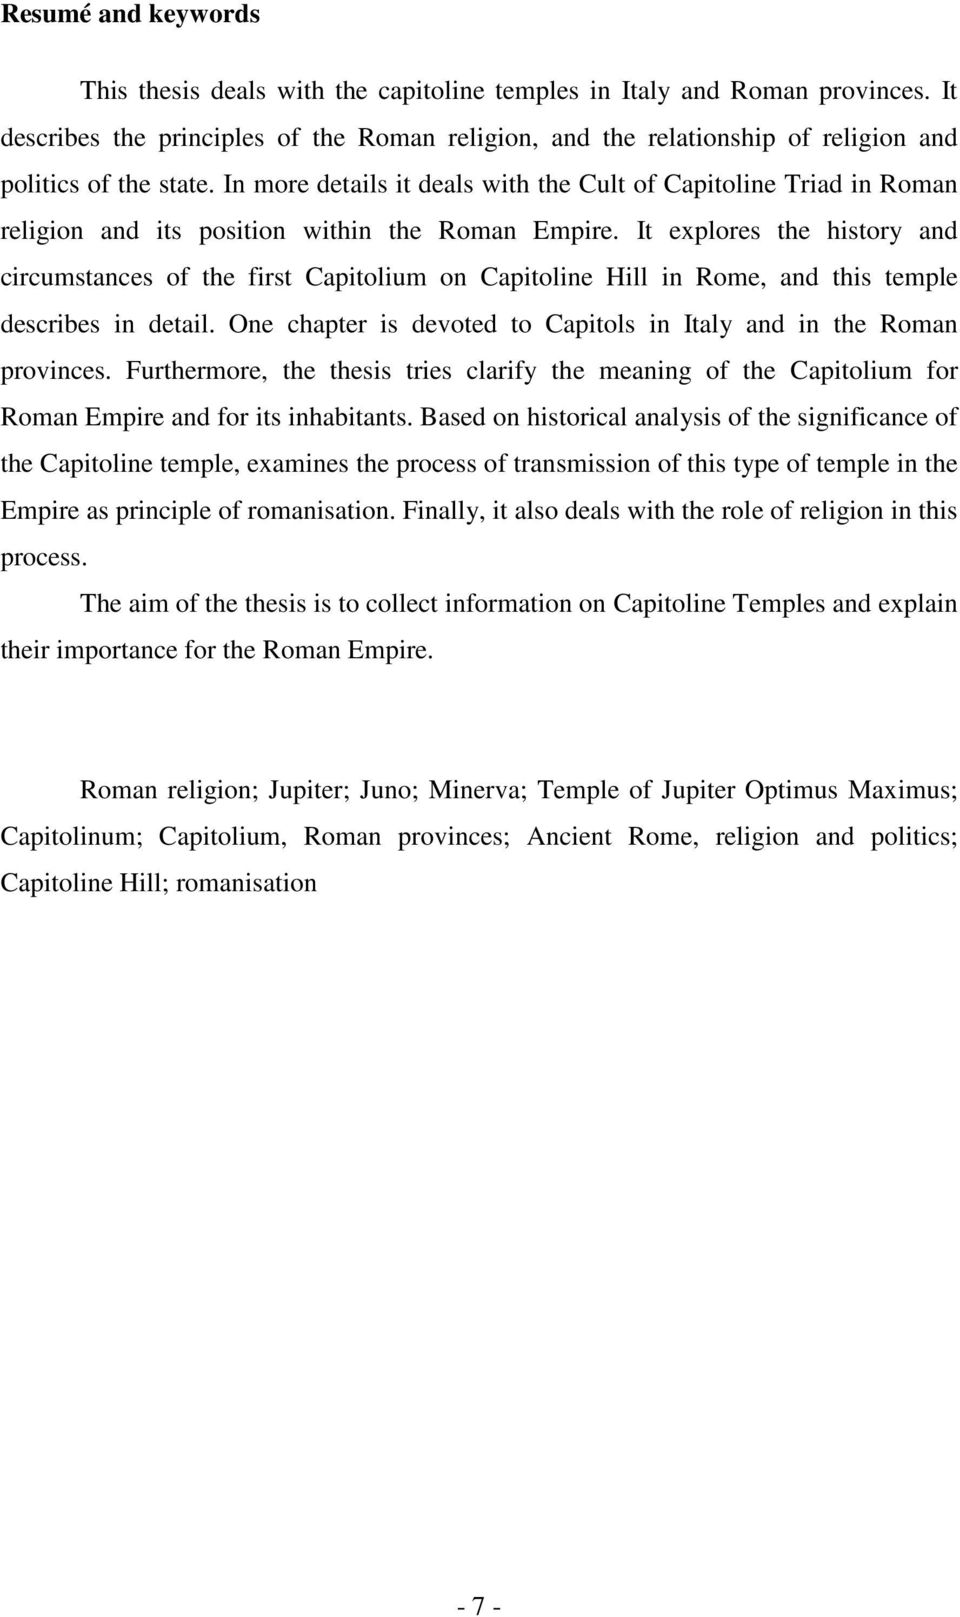 In more details it deals with the Cult of Capitoline Triad in Roman religion and its position within the Roman Empire.